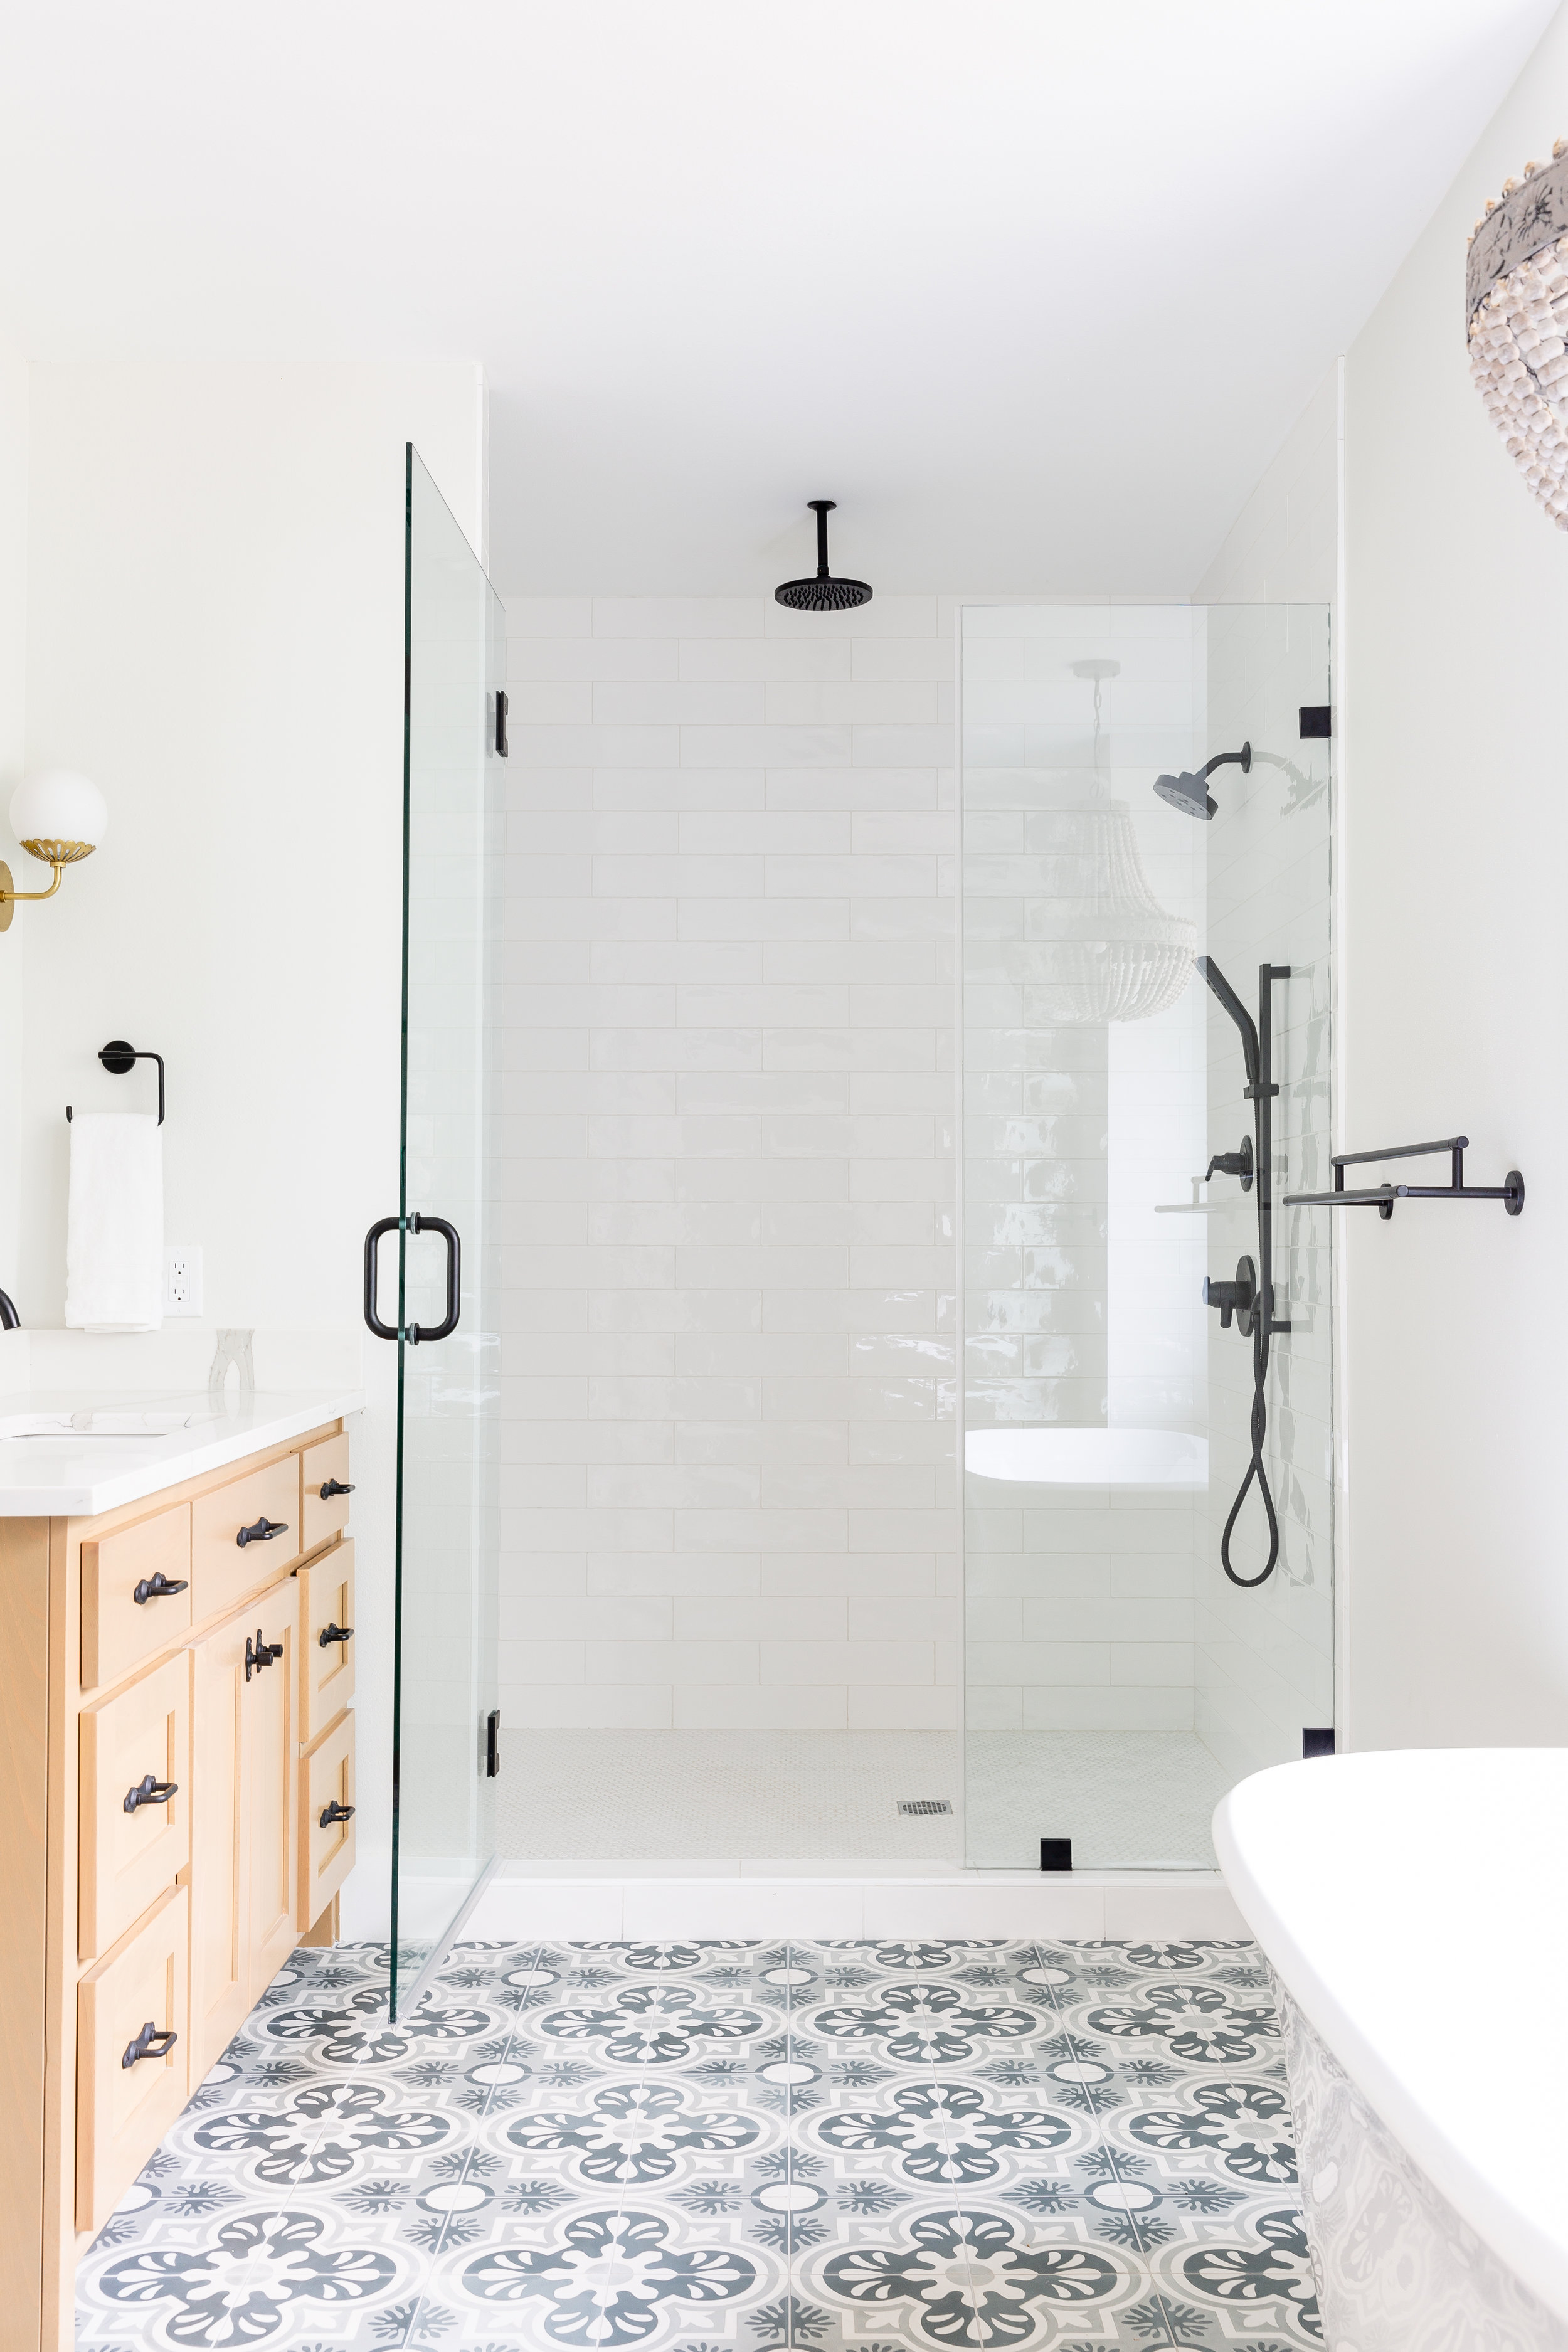 We wanted the master bathroom to be a private oasis with a blend unique & natural elements. We went for simple surroundings with one bold feature. This encaustic tile by  Villa Lagoon  provides a fresh take on an old fashioned pattern. Perfect for Sarah's modern farmhouse concept!